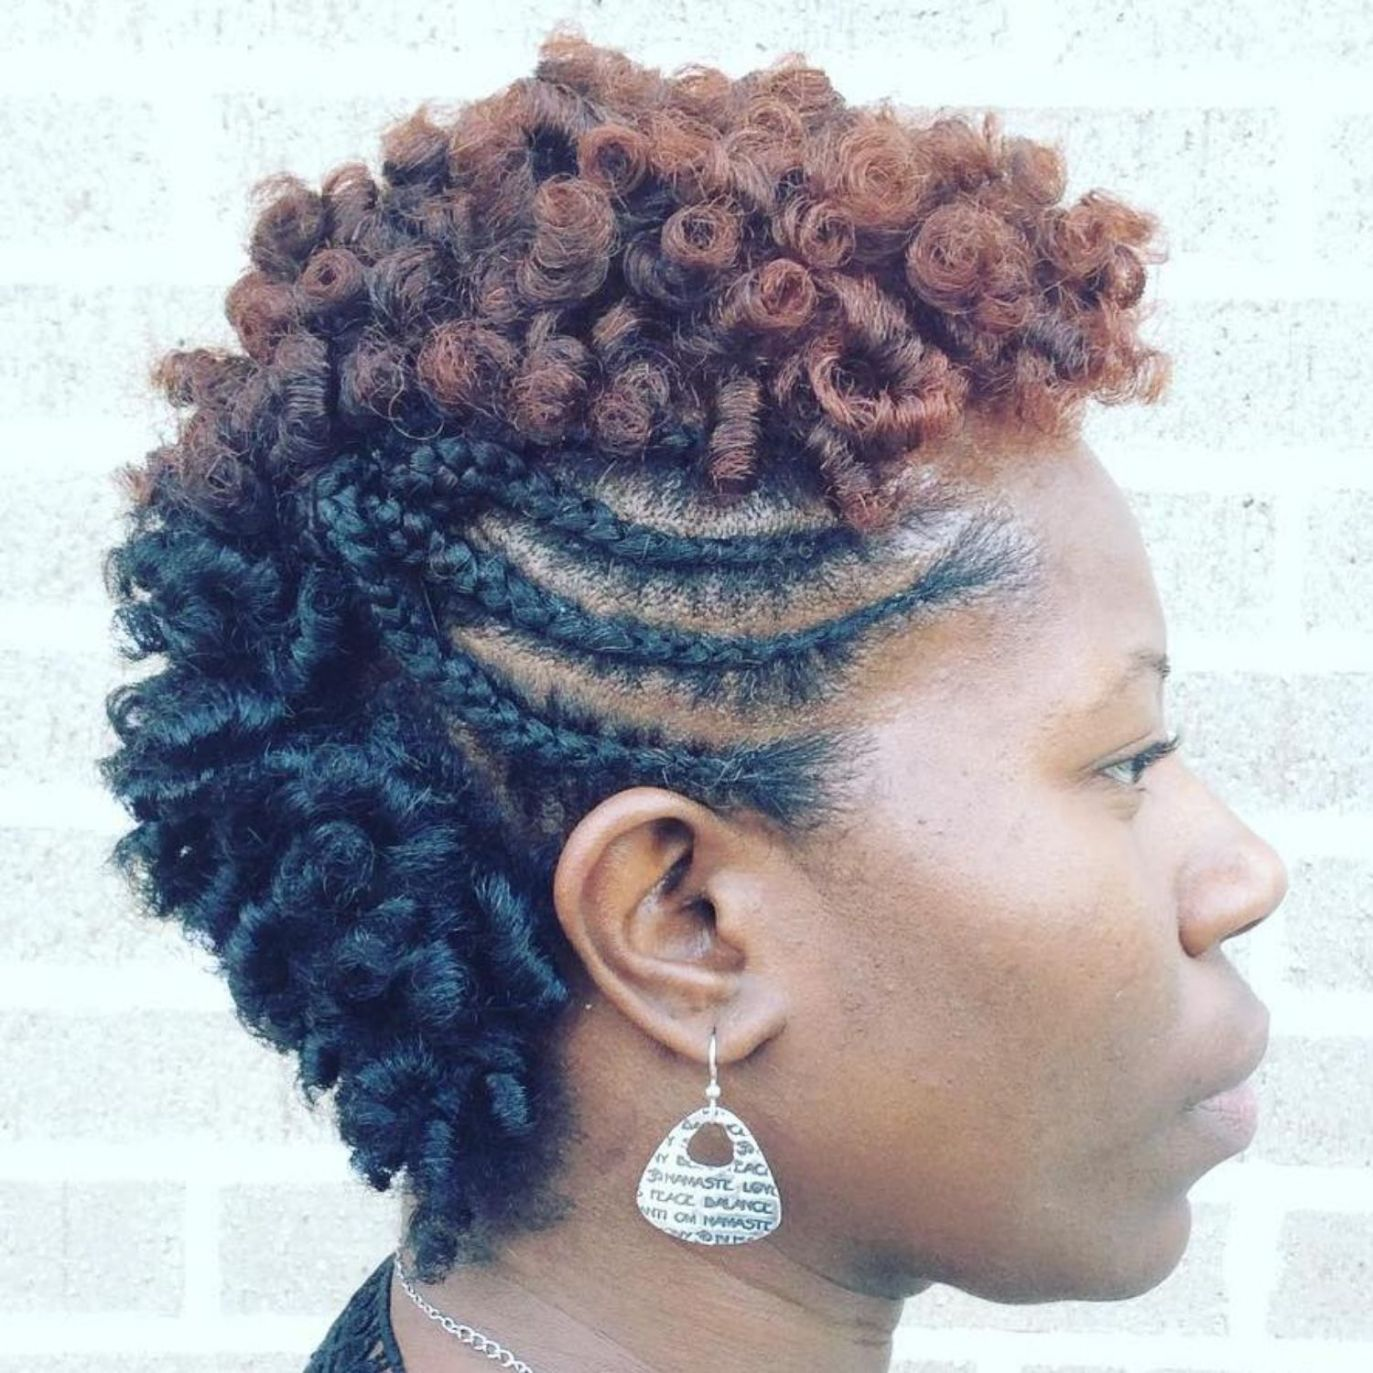 most inspiring natural hairstyles for short hair in hair